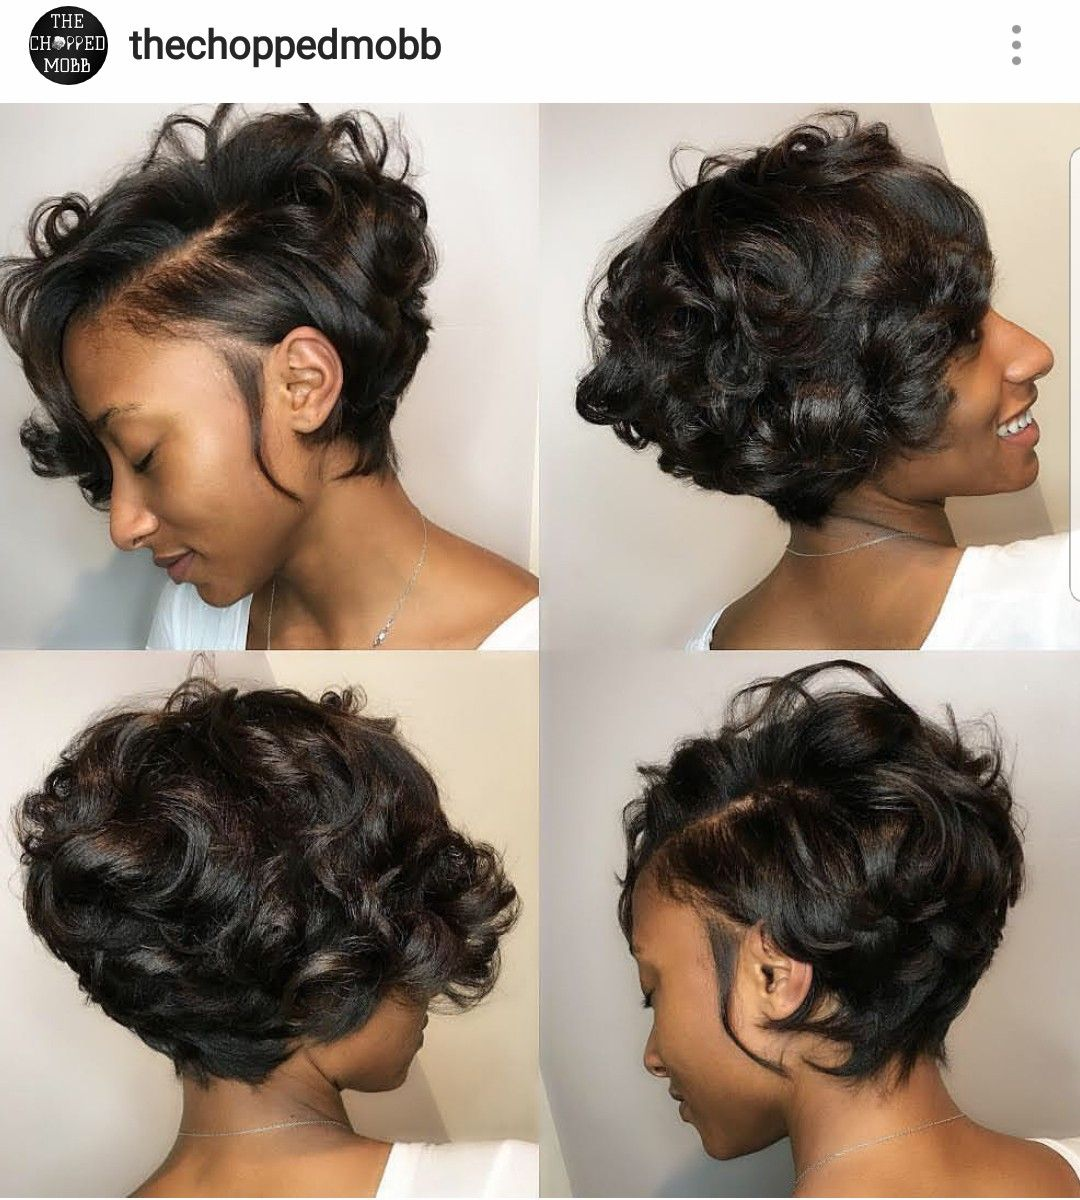 Short Relax Hair Styles Natural Hair Styles Short Wigs Curly Hair Styles